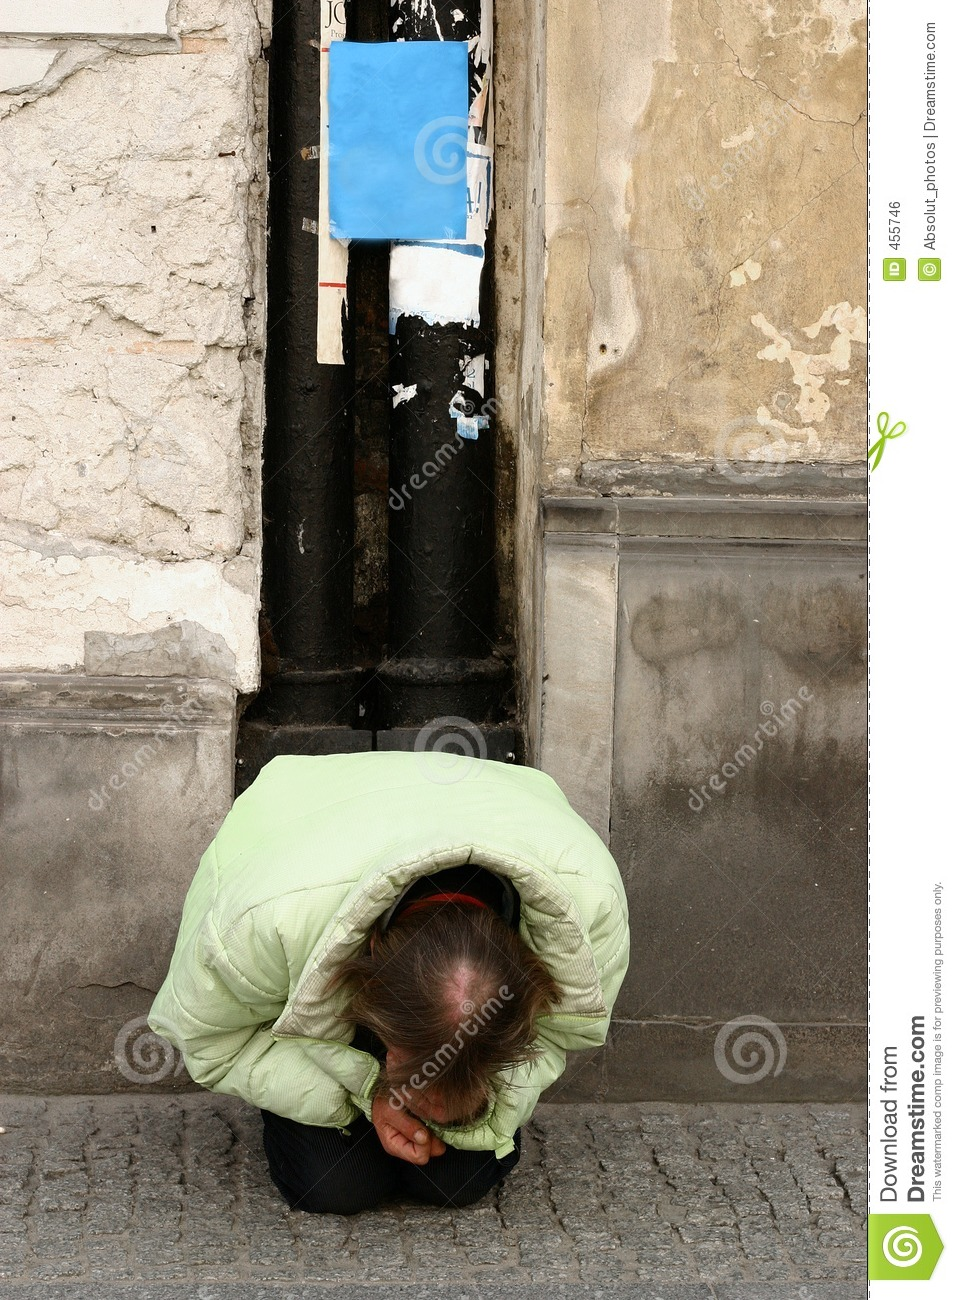 Download Homeless IV stock photo. Image of person, hunger, misery - 455746